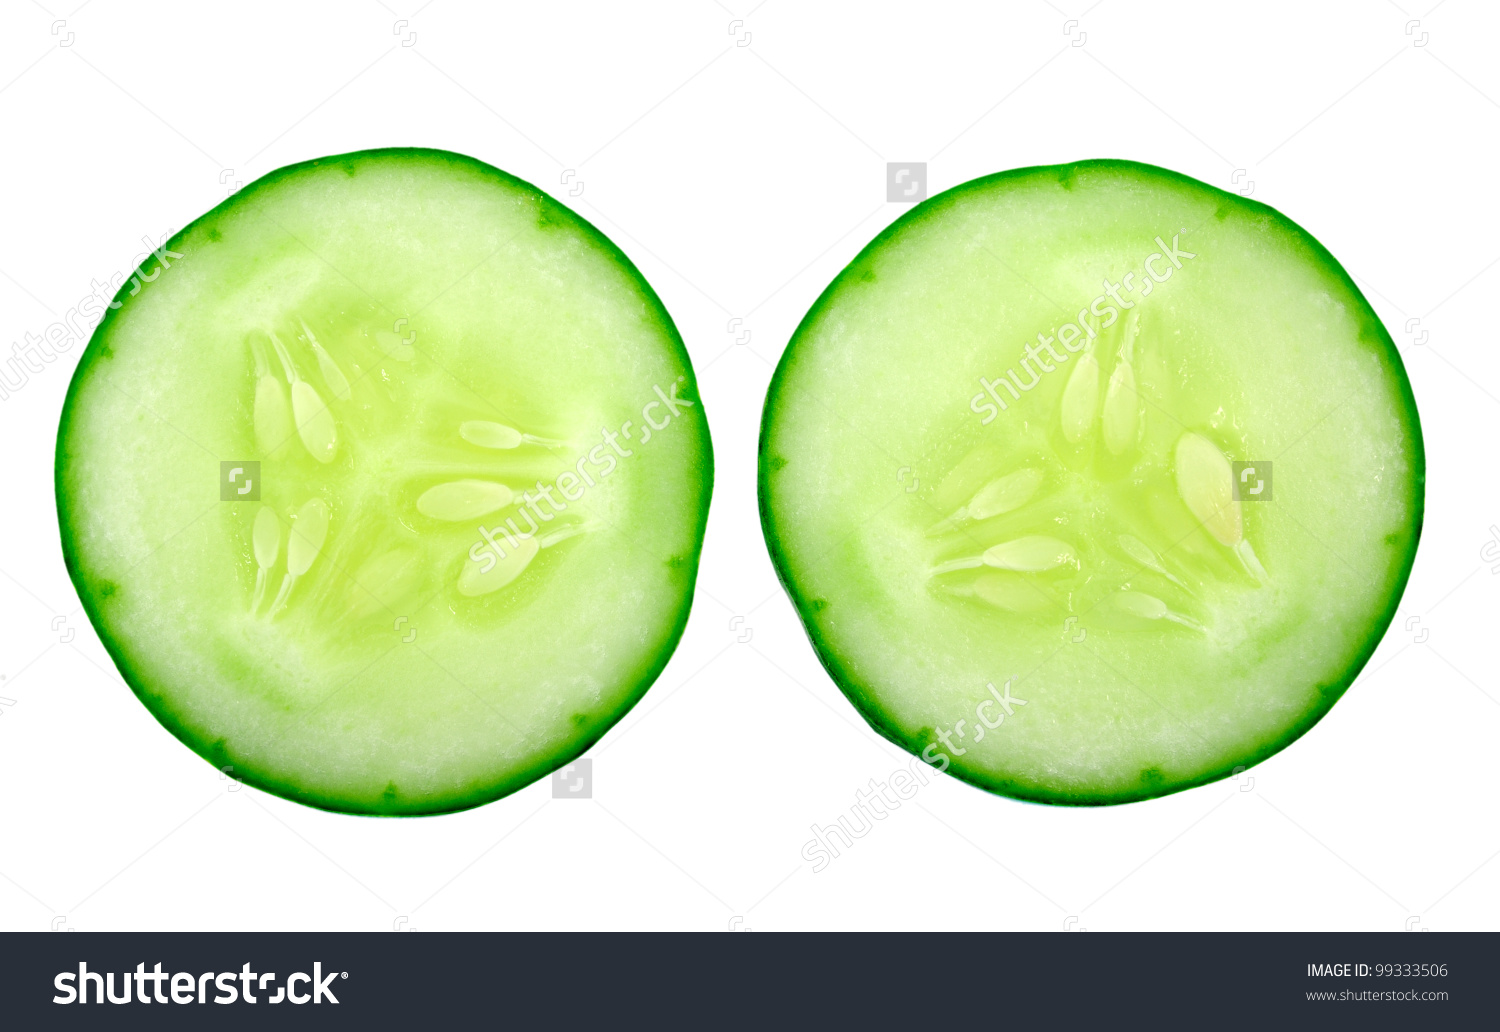 Fresh Cucumber Slice Isolated On White Stock Photo 99333506.